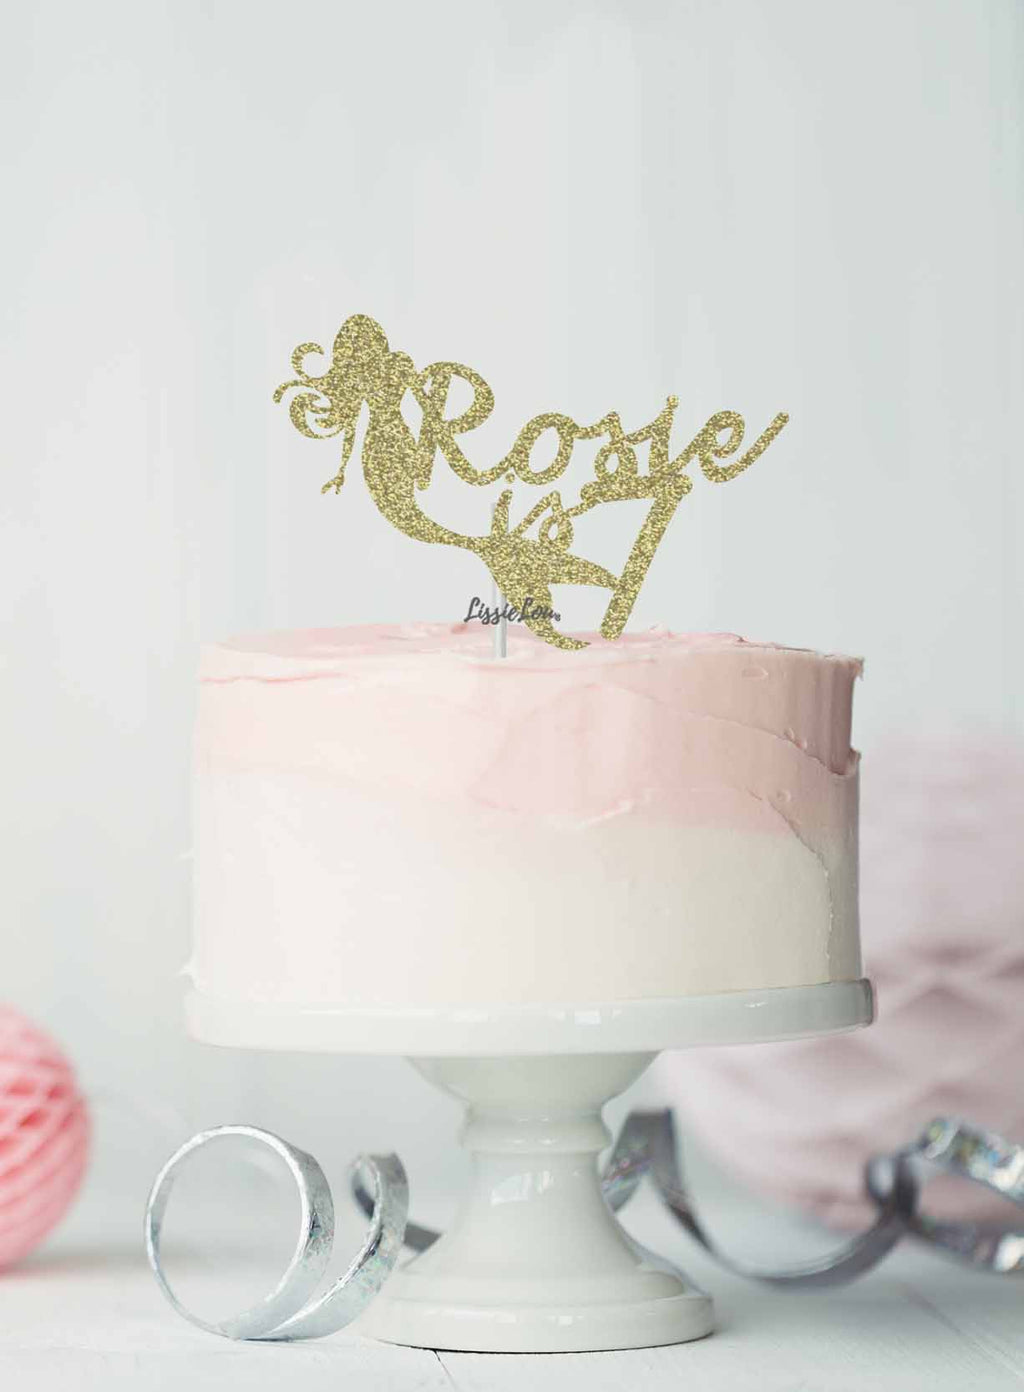 Bespoke Mermaid with Name and Age Cake Topper Glitter Card